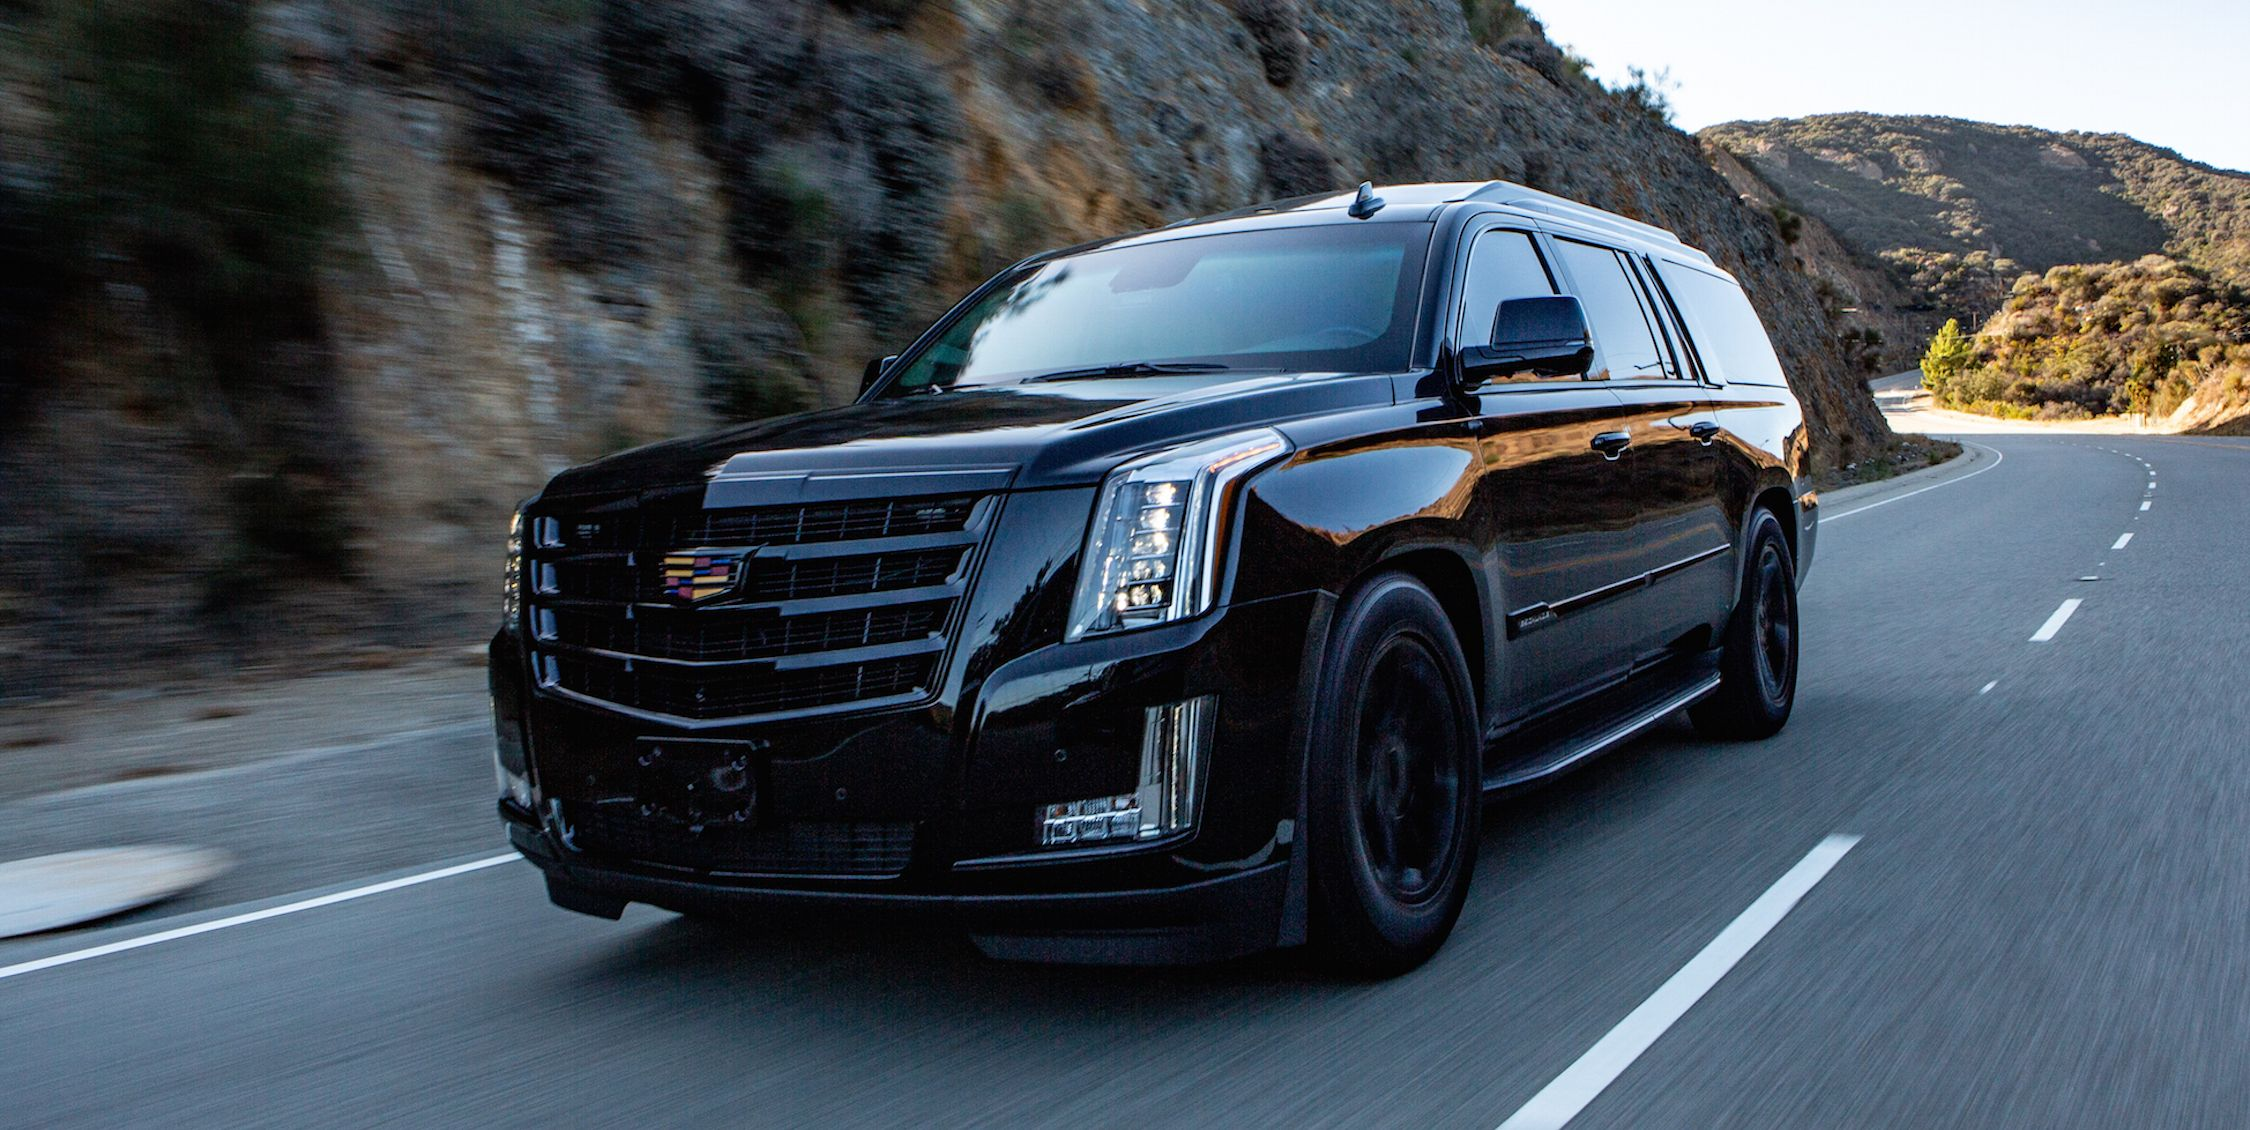 Armored Cadillac Escalade Is the Mobile Safe Room of Your Dreams